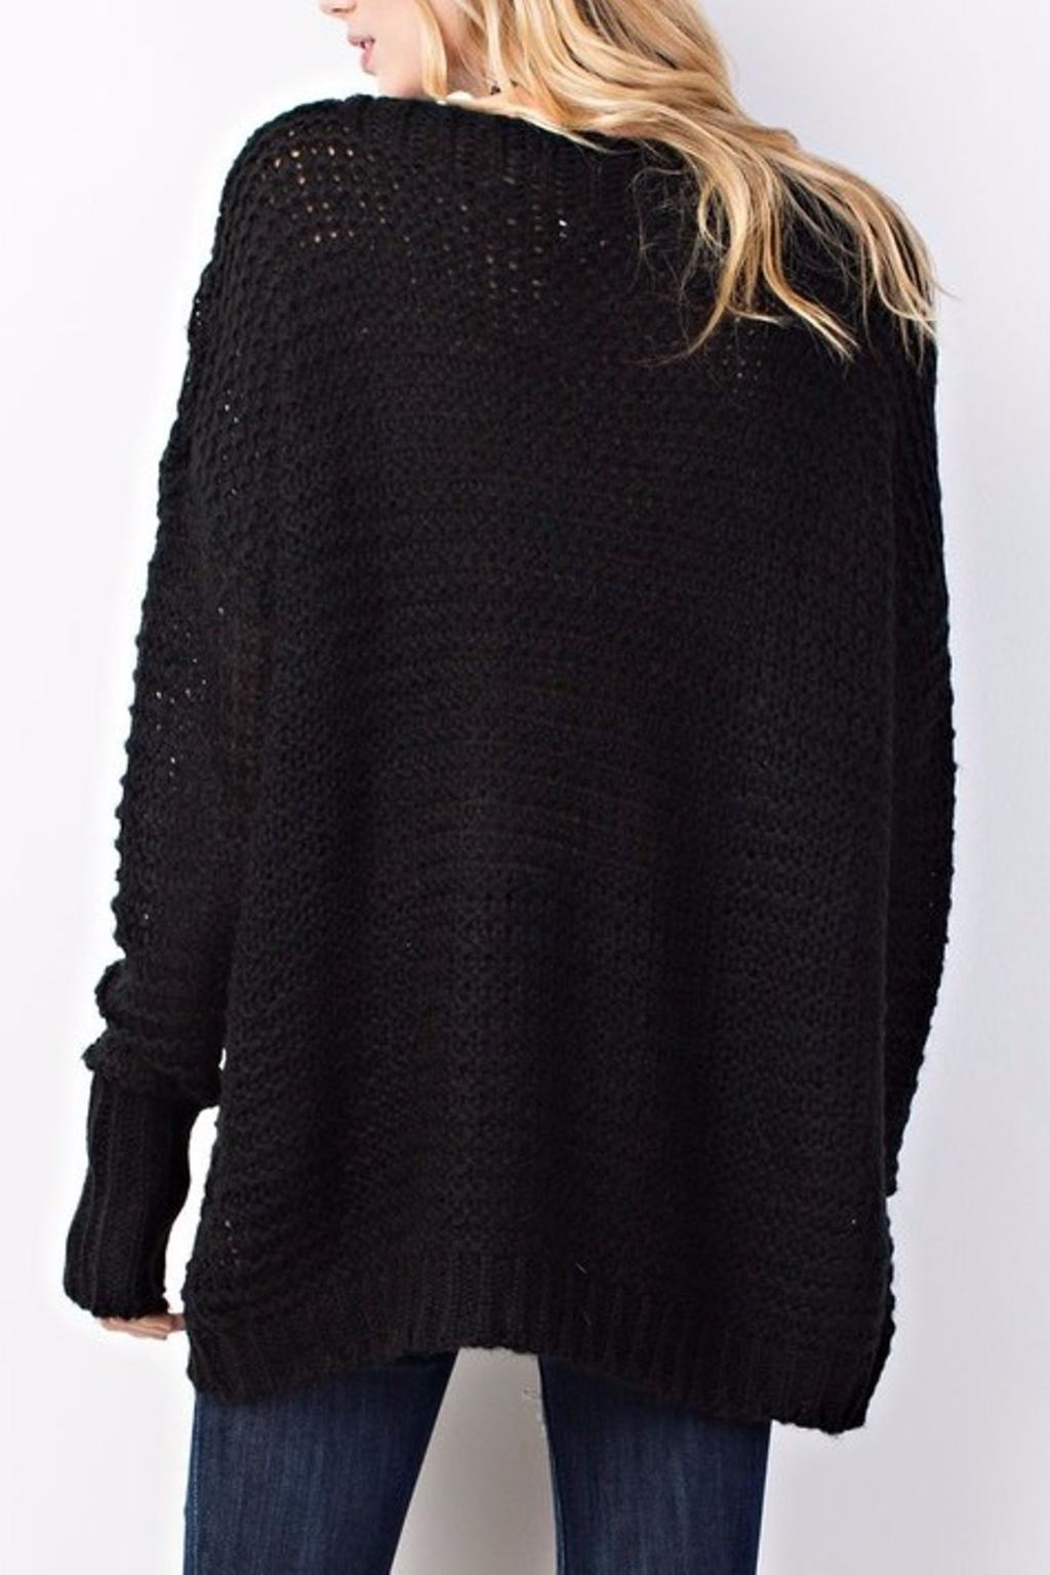 easel Sweater Knit Tunic - Front Full Image